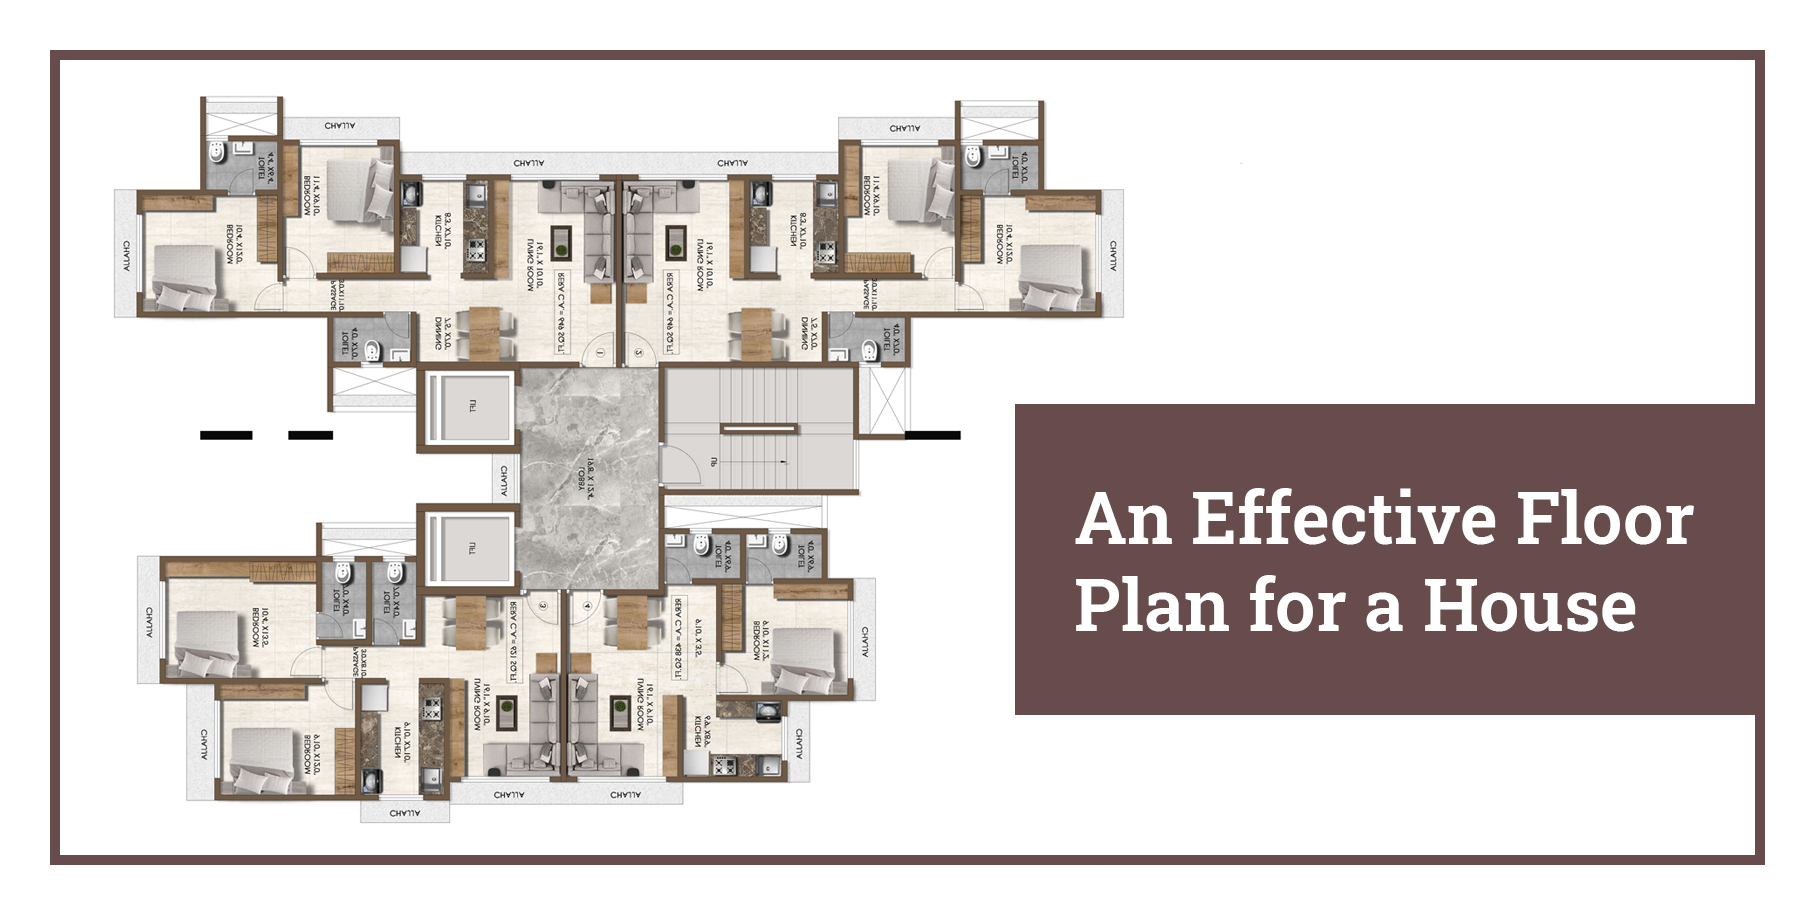 How to Come Up With an Effective Floor Plan for a House?